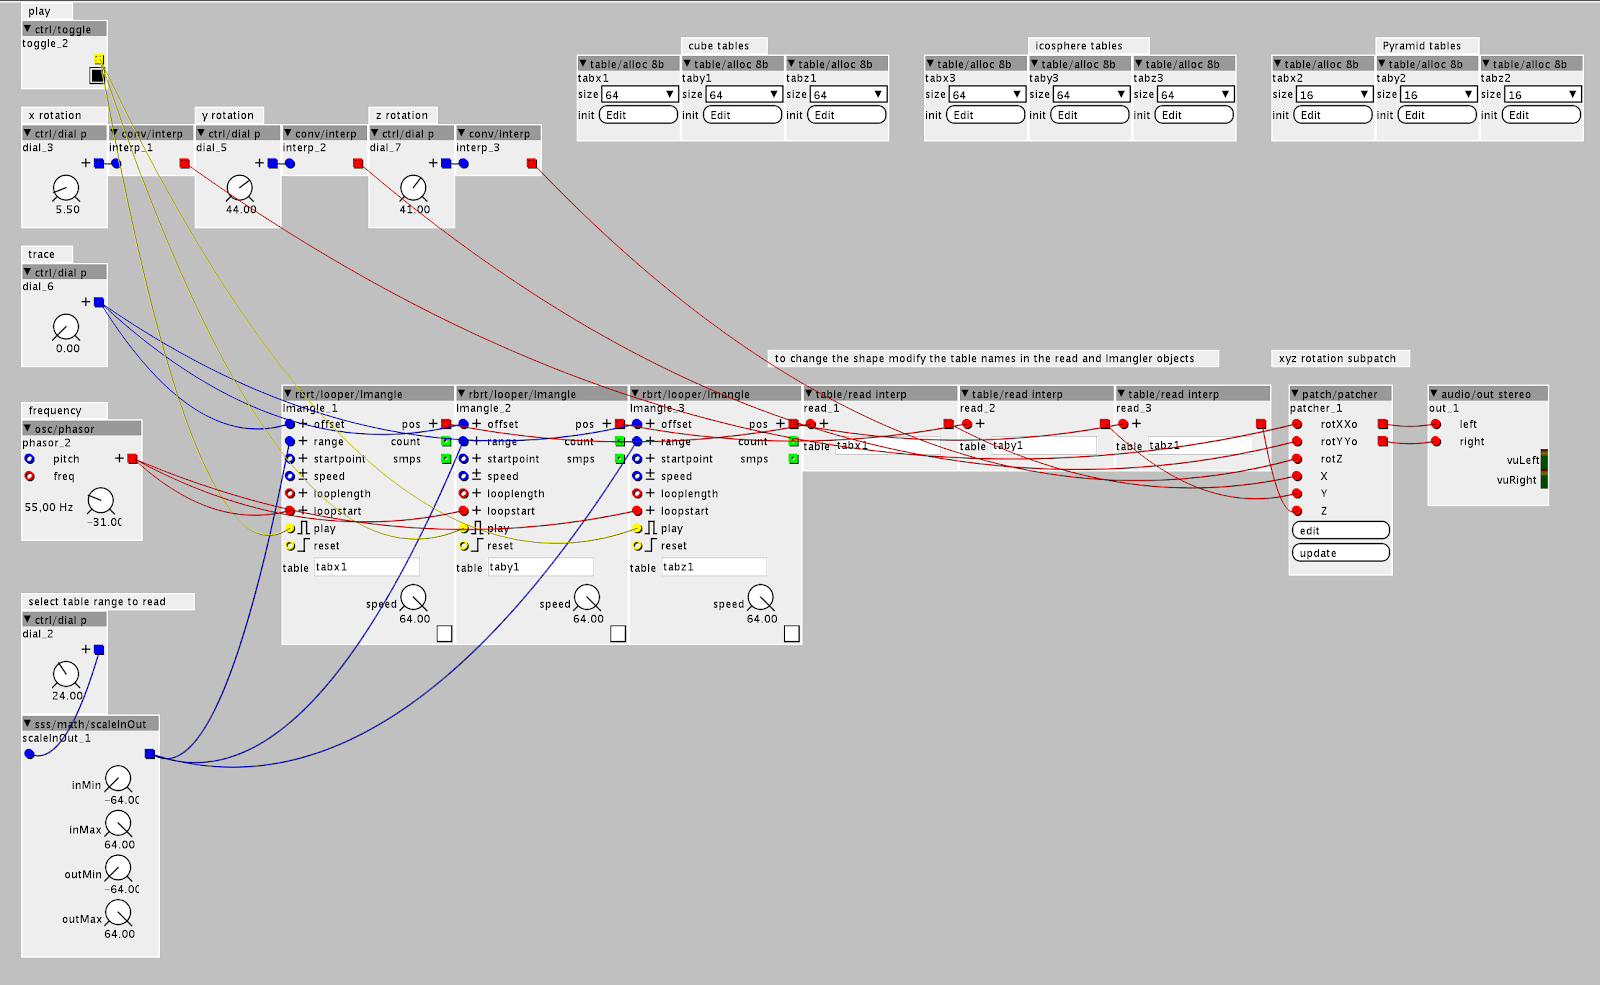 Akirasrebirth This Diagram Is To Be Used In Conjunction With The Spreadsheet For Conversion You Can Use Oscistudio Table Inside Patch There Are Already 3 Different Example Shapes